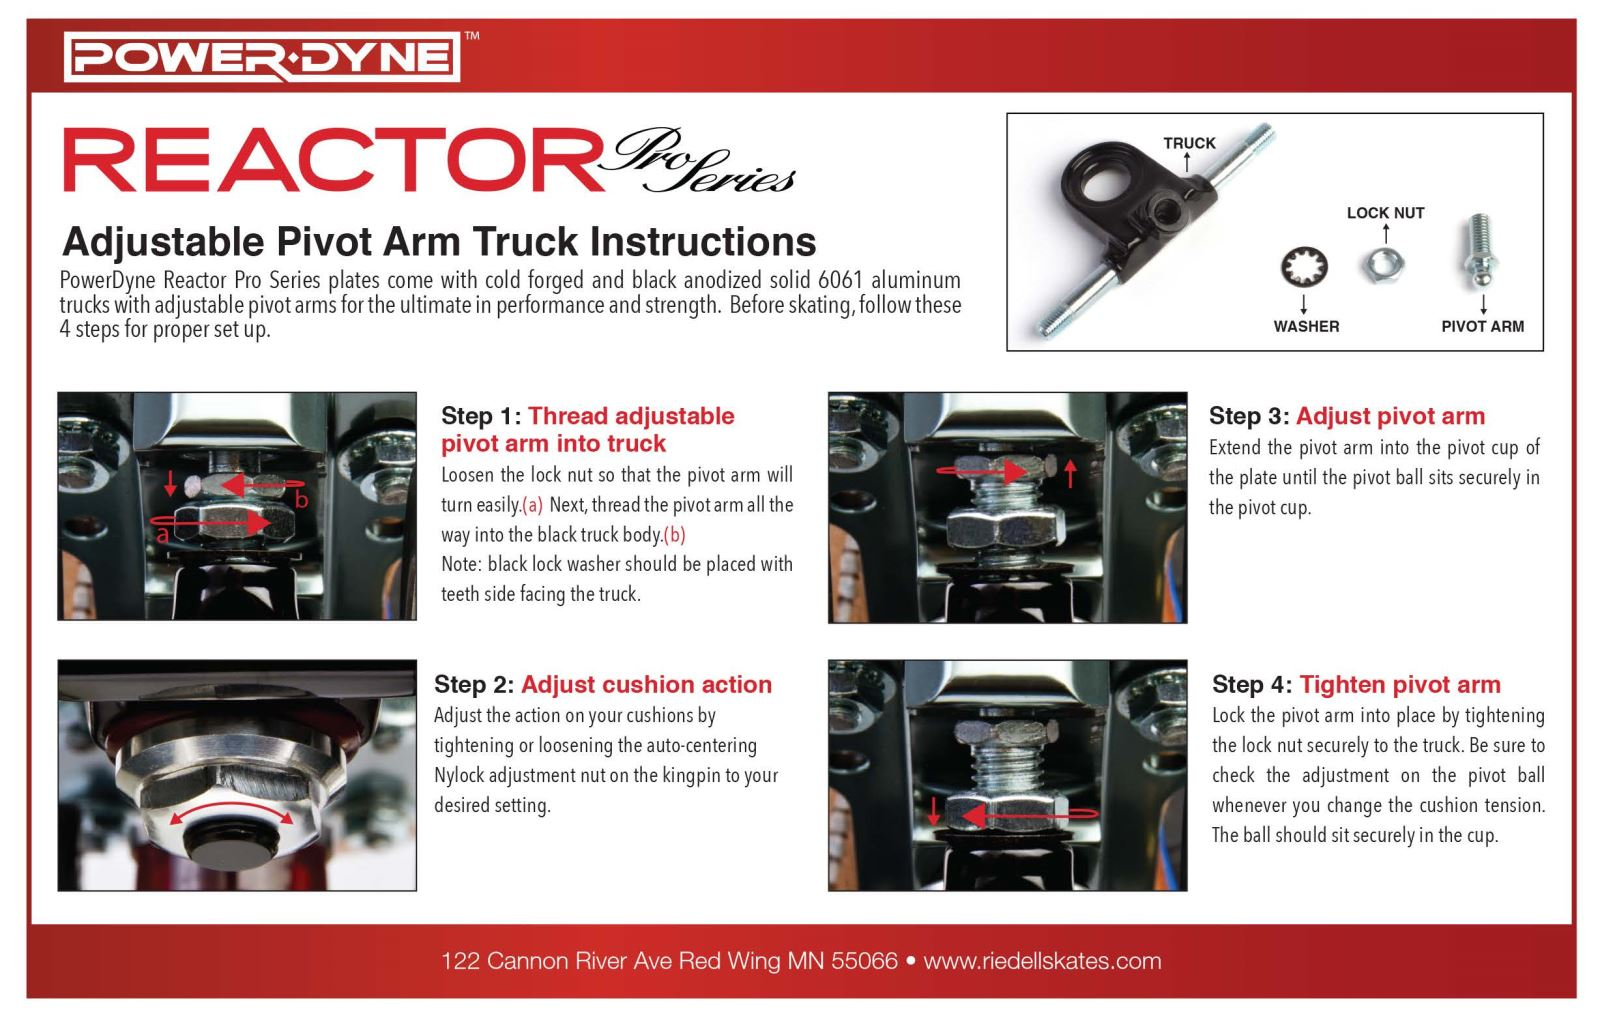 PowerDyne Reactor Pro Series Adjustable Pivot Arm Truck Instructions Card